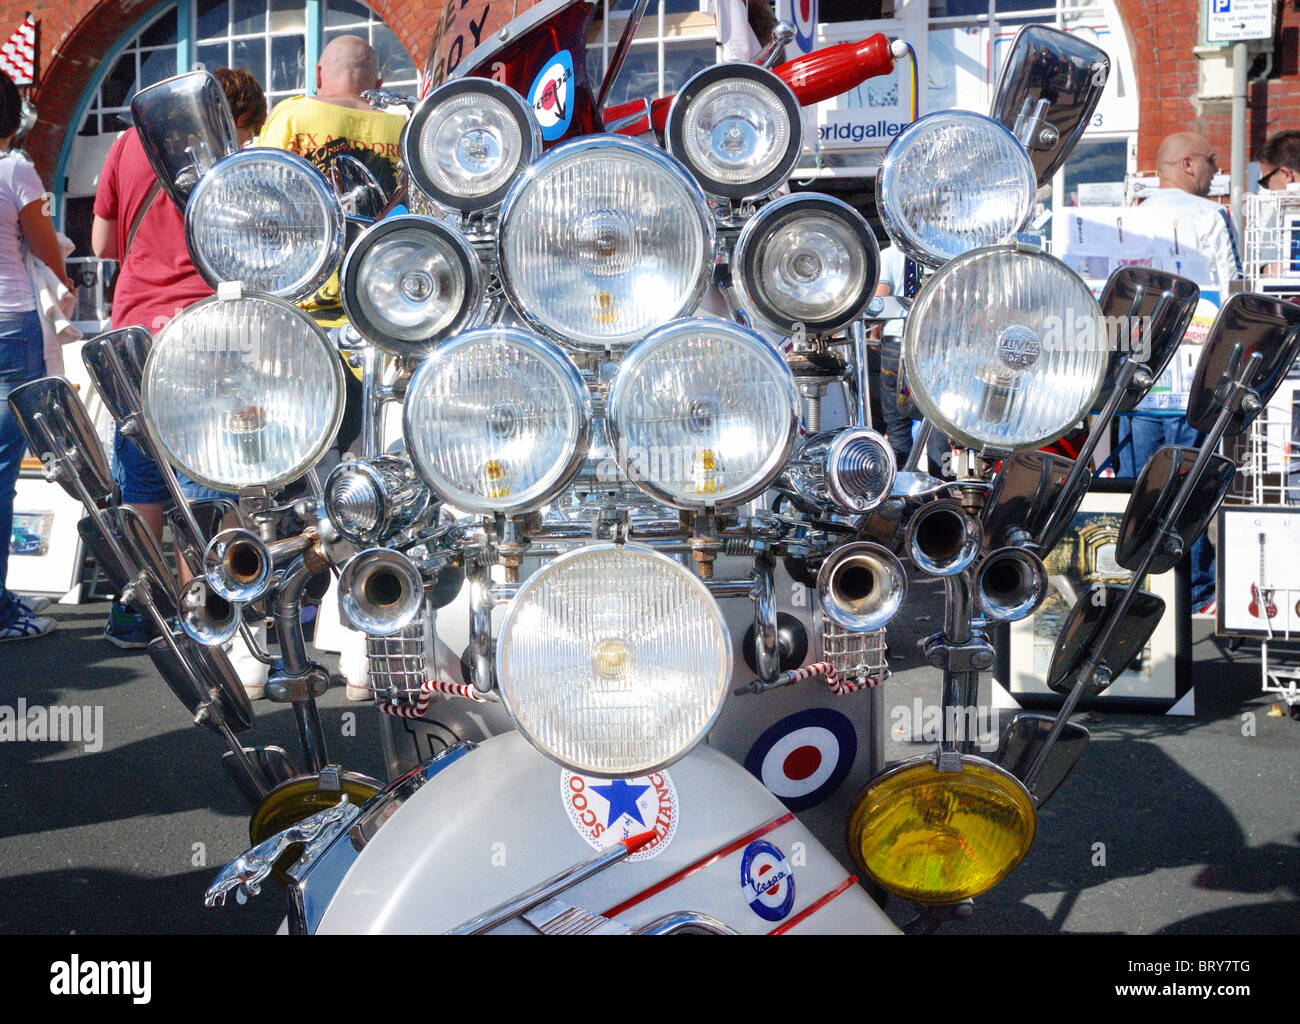 Mod moped decorated with many lights - Stock Image